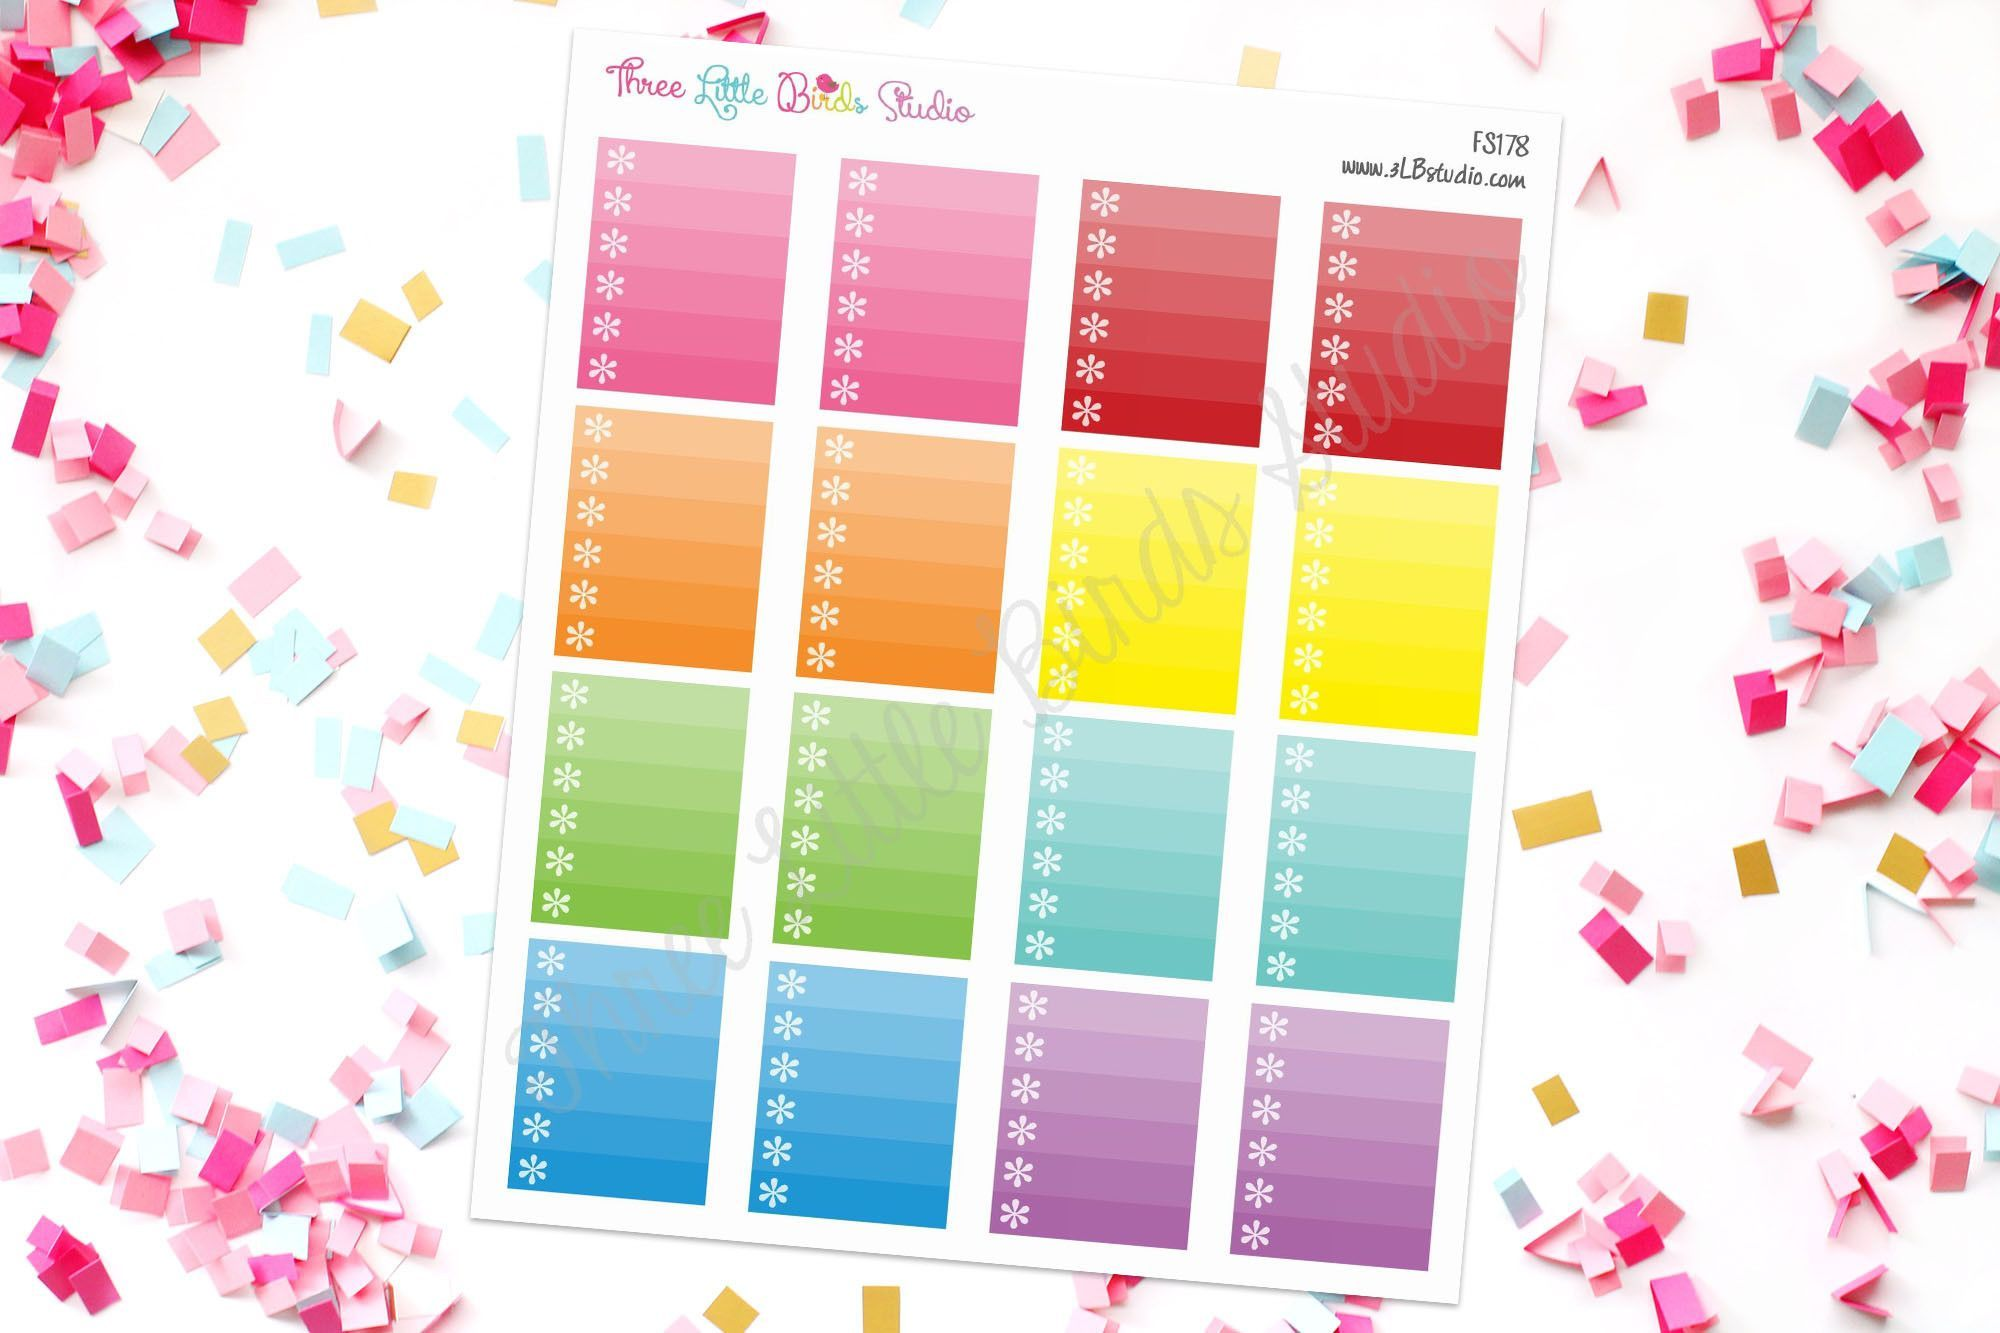 Ombre Full Box Asterisk Checklist Stickers for the 3LB Vertical WO2P inserts, ECLP,and similar planners